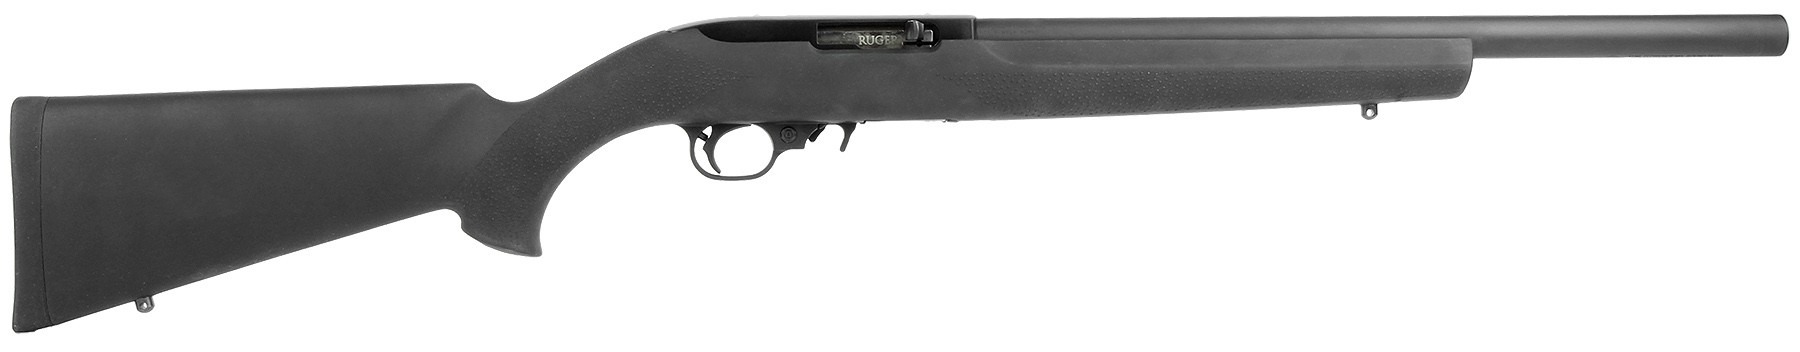 Ruger 10/22 Yankee Hill Integrally Suppressed Rifle .22 lr